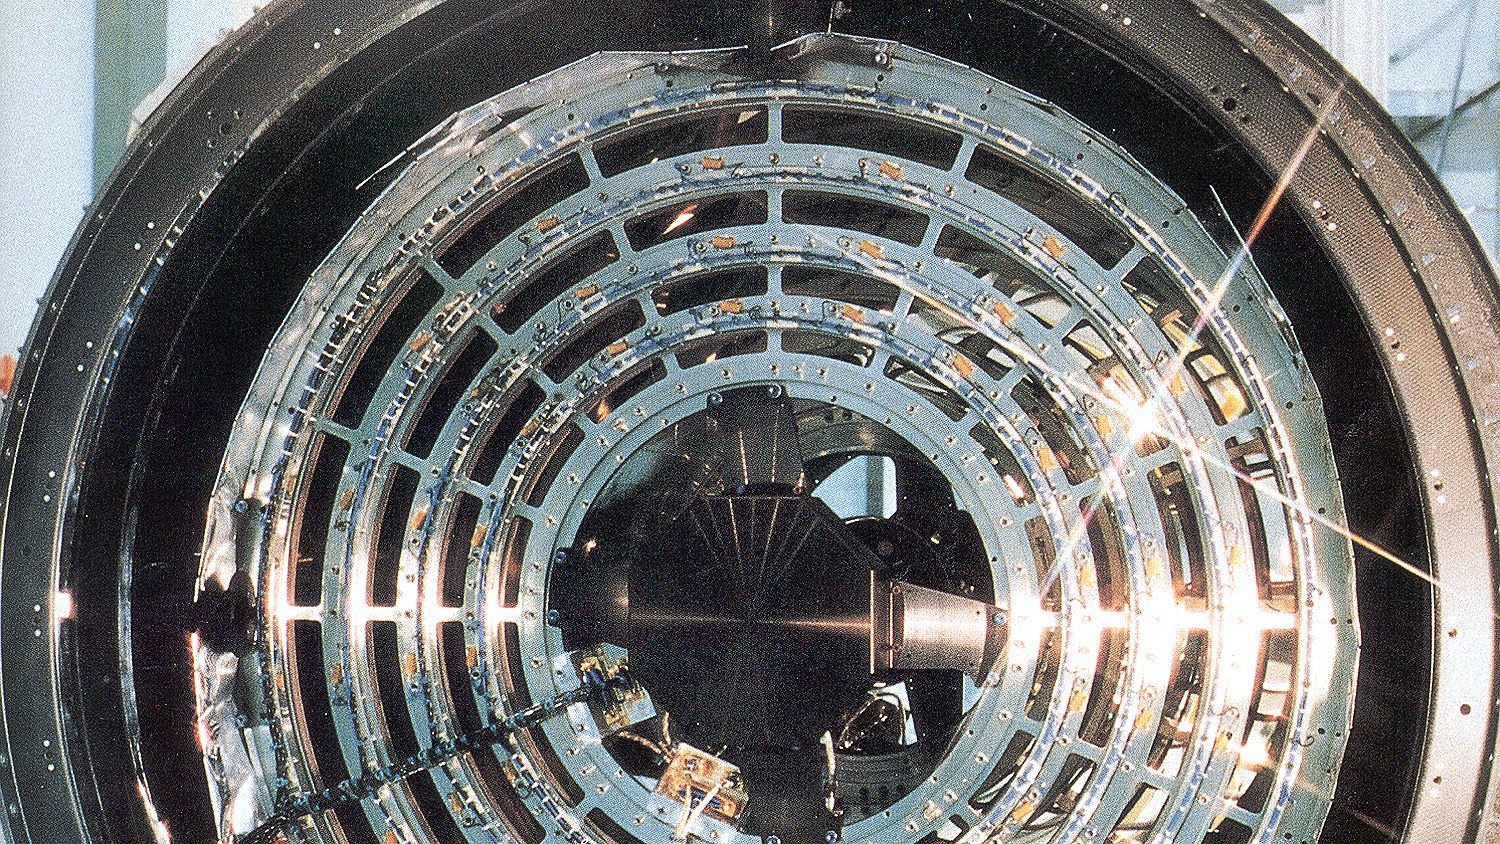 The ROSAT Mirror System